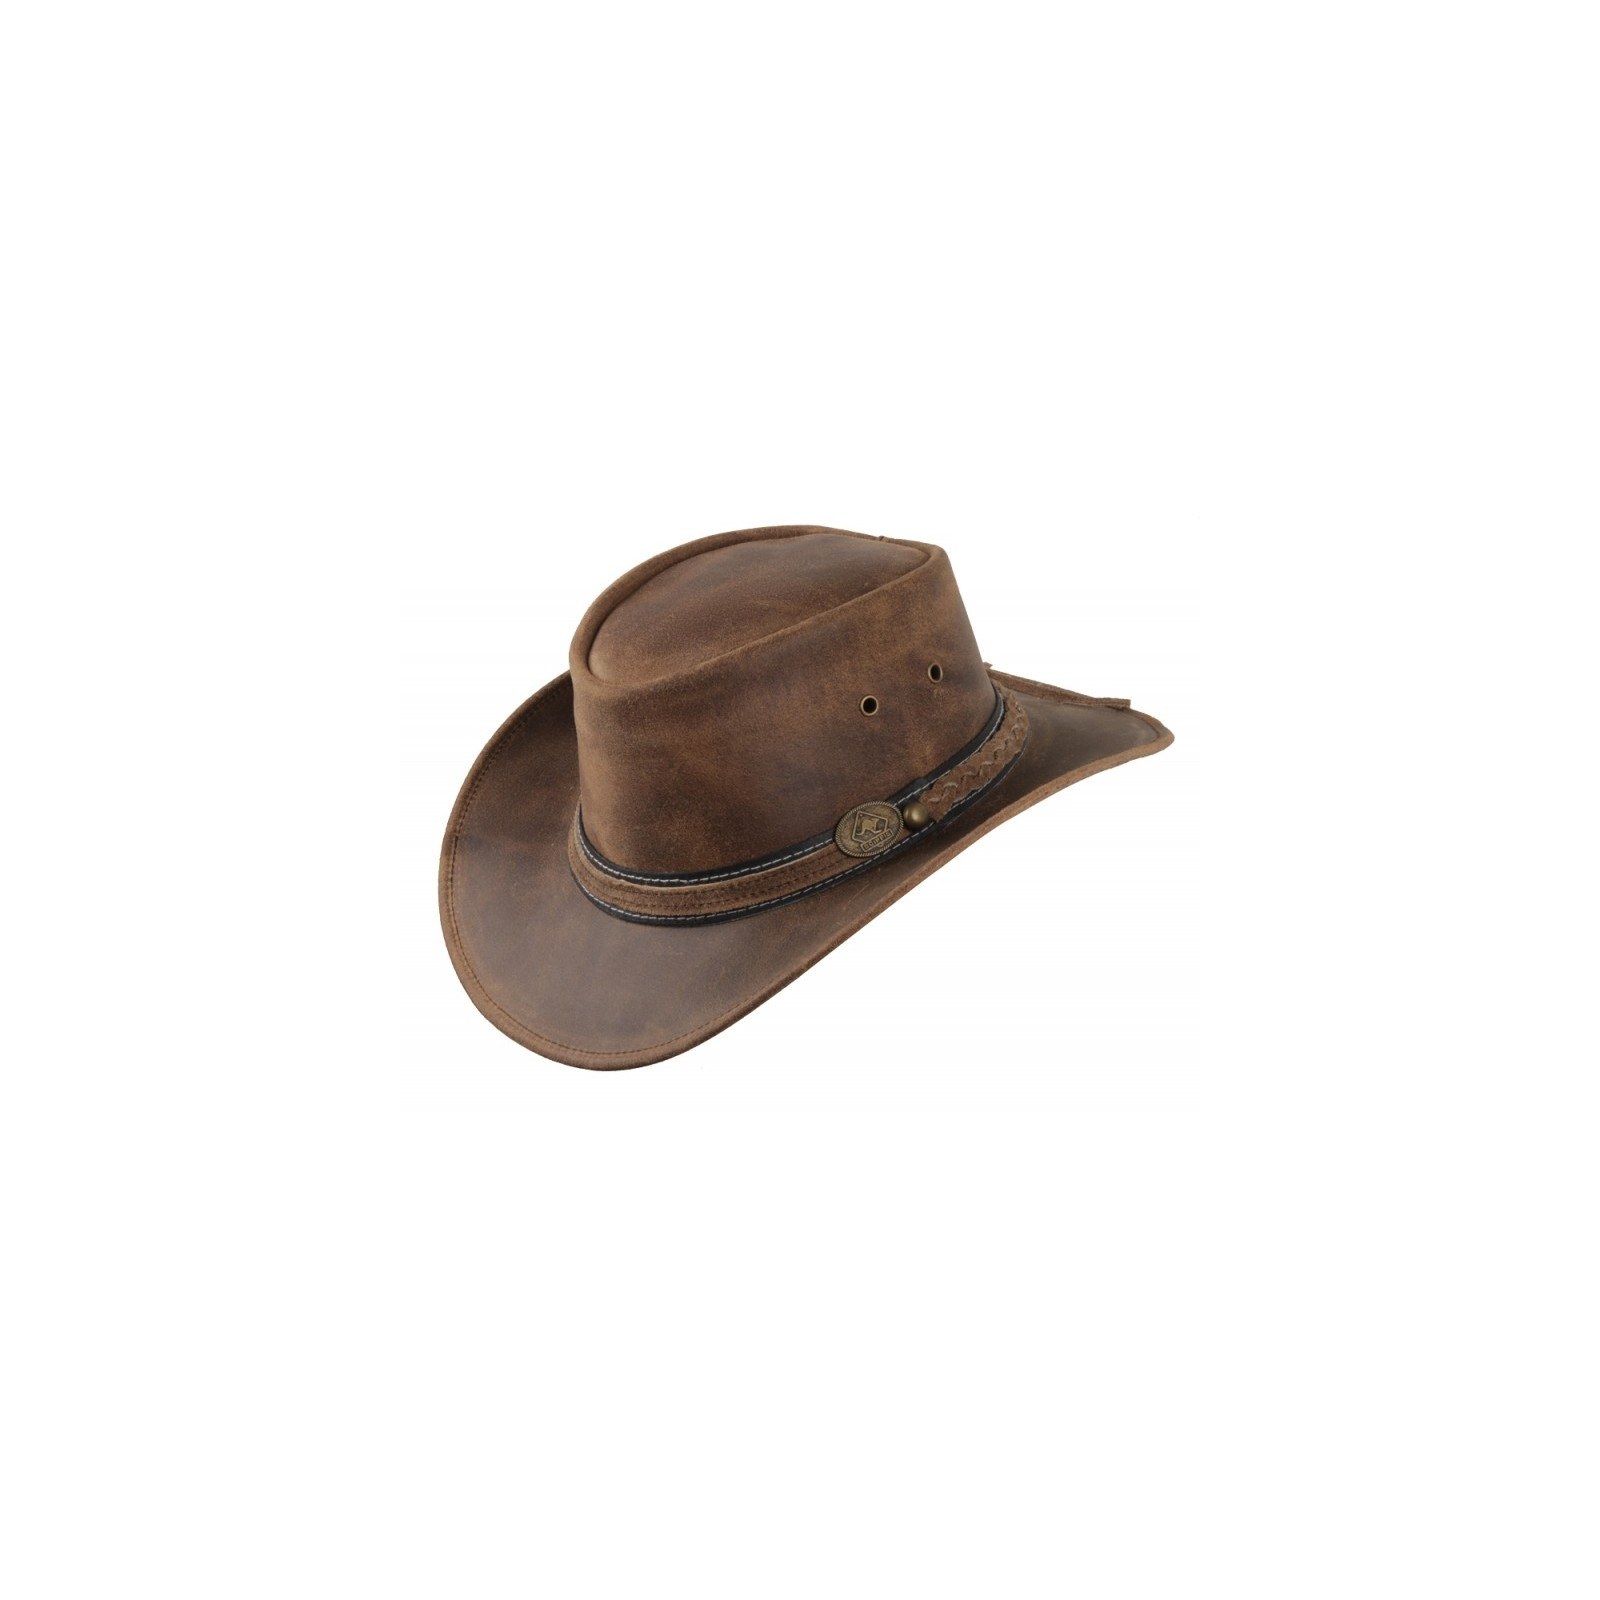 Scippis Irving leather hat